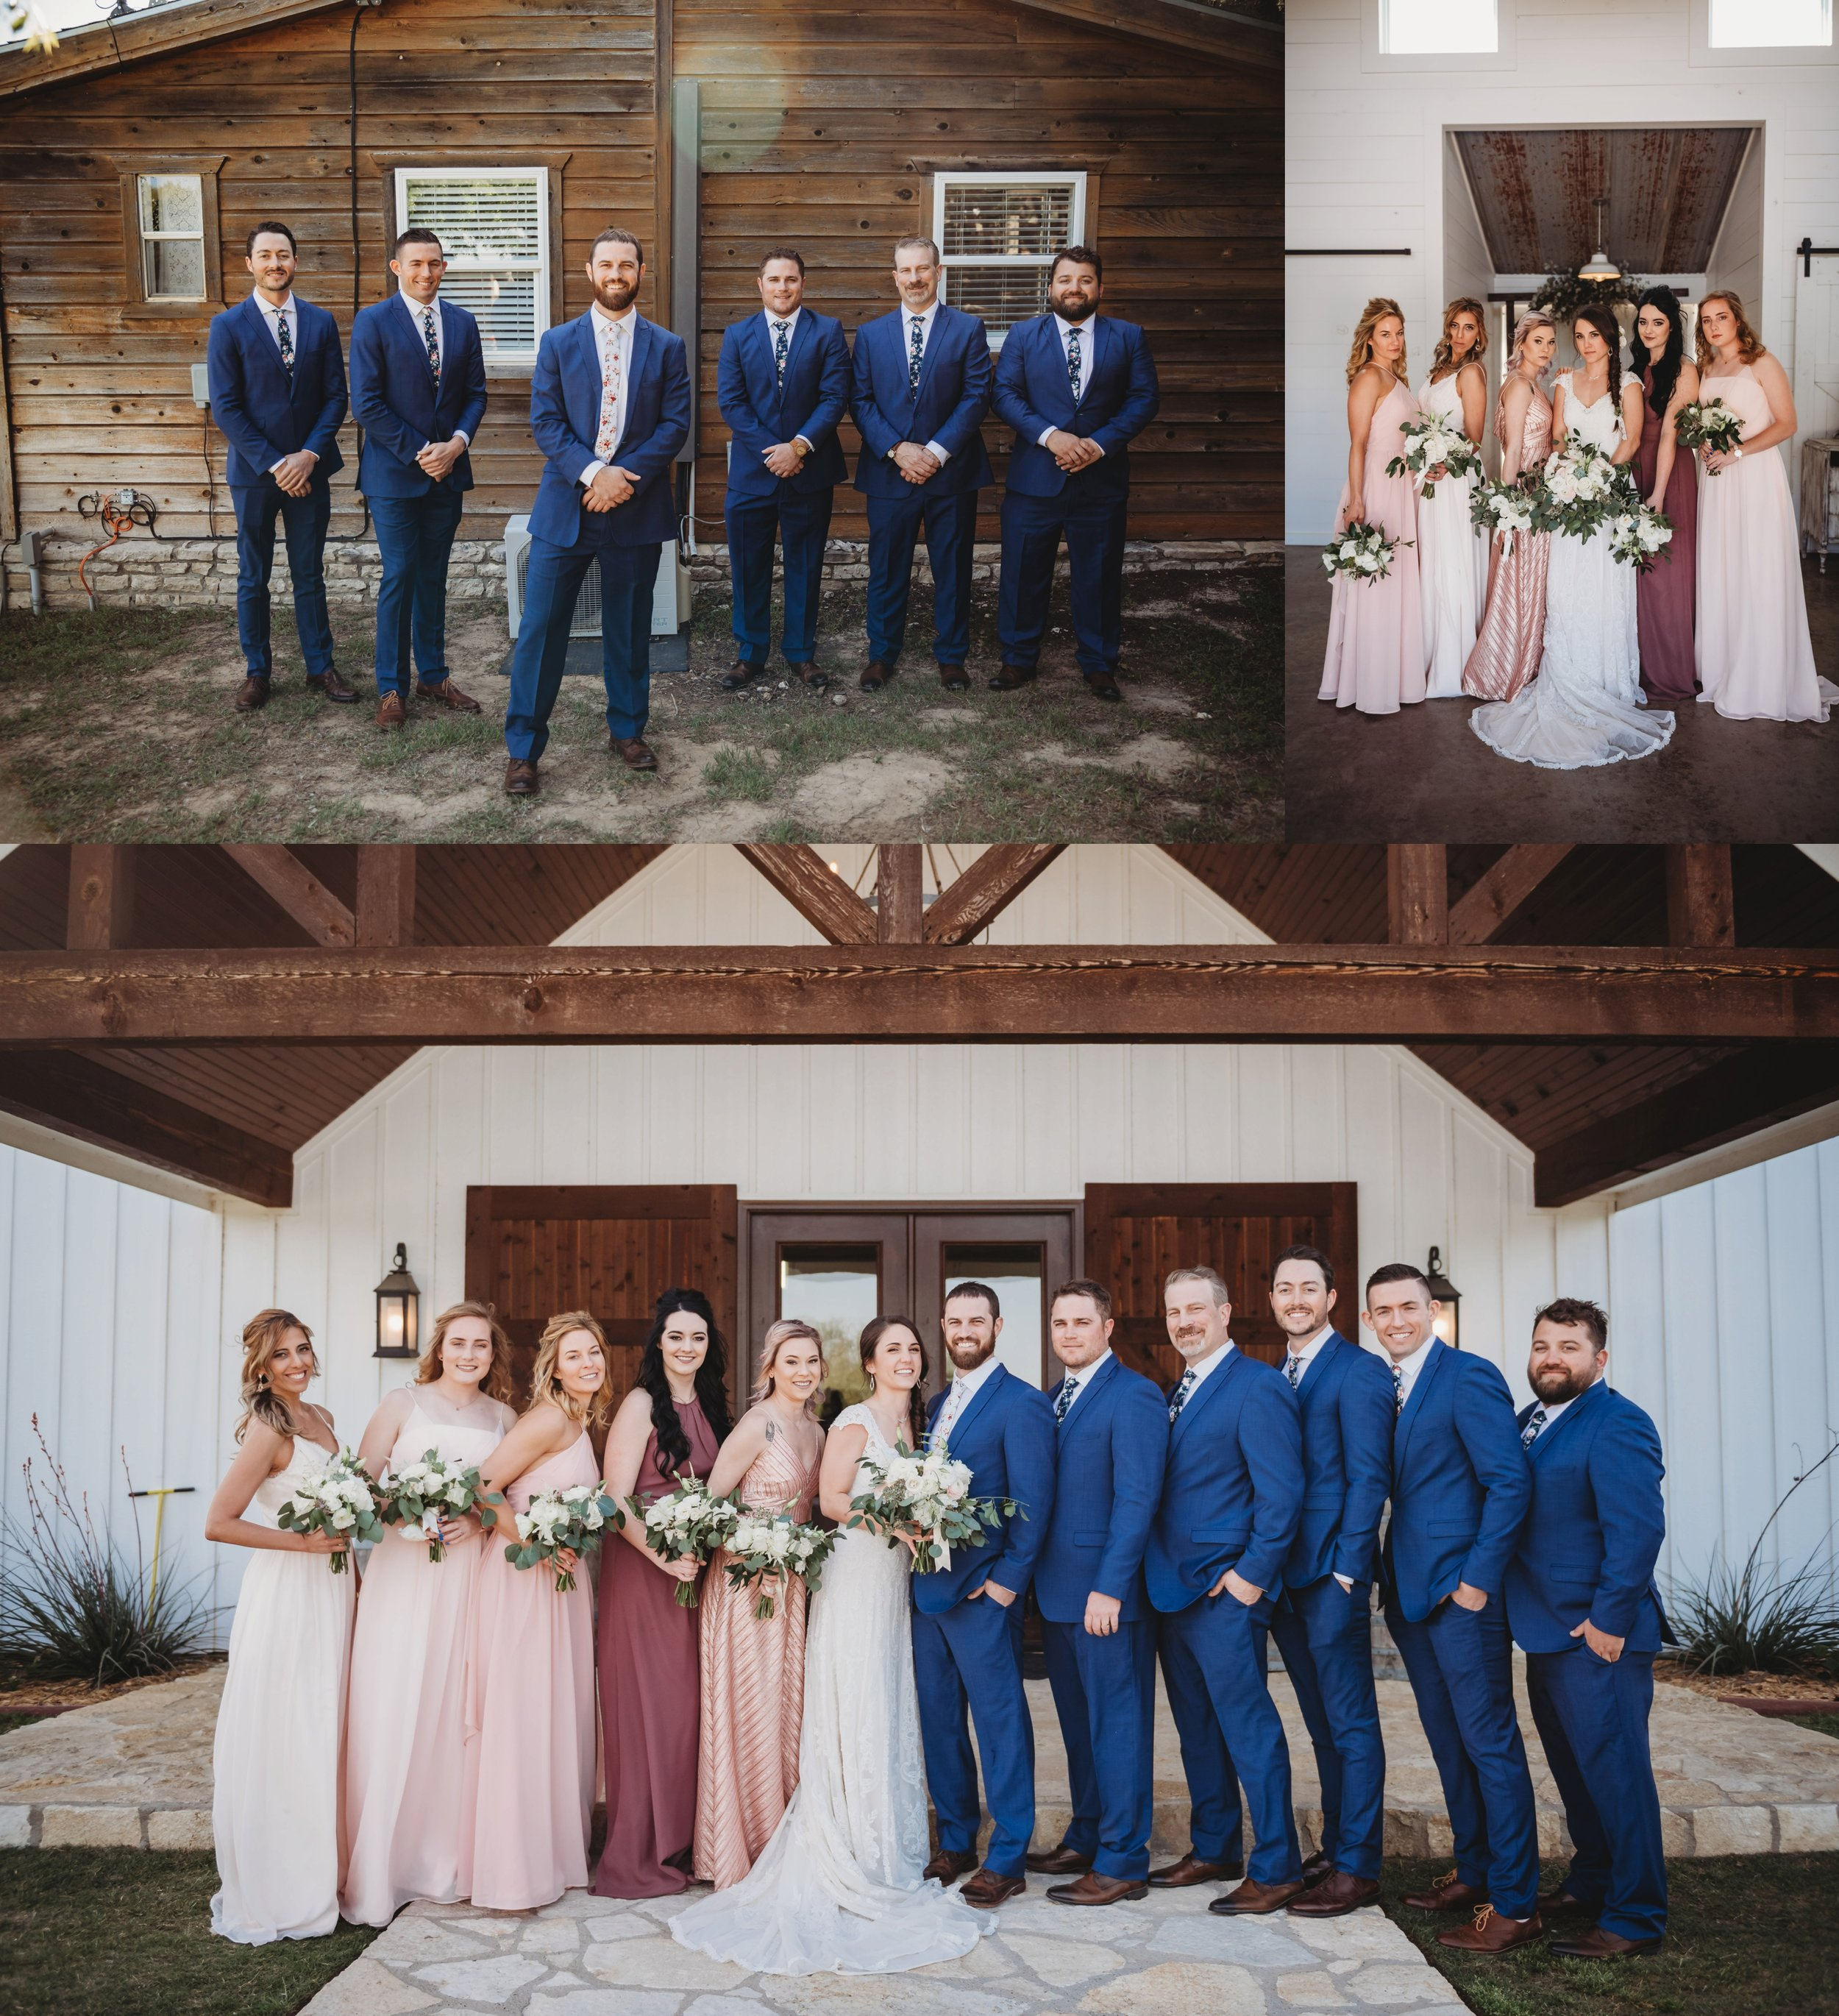 The-White-Fiore-Five-Oaks-Farm-Fort-Worth-Wedding-Planner-Wedding-Party_004.jpg